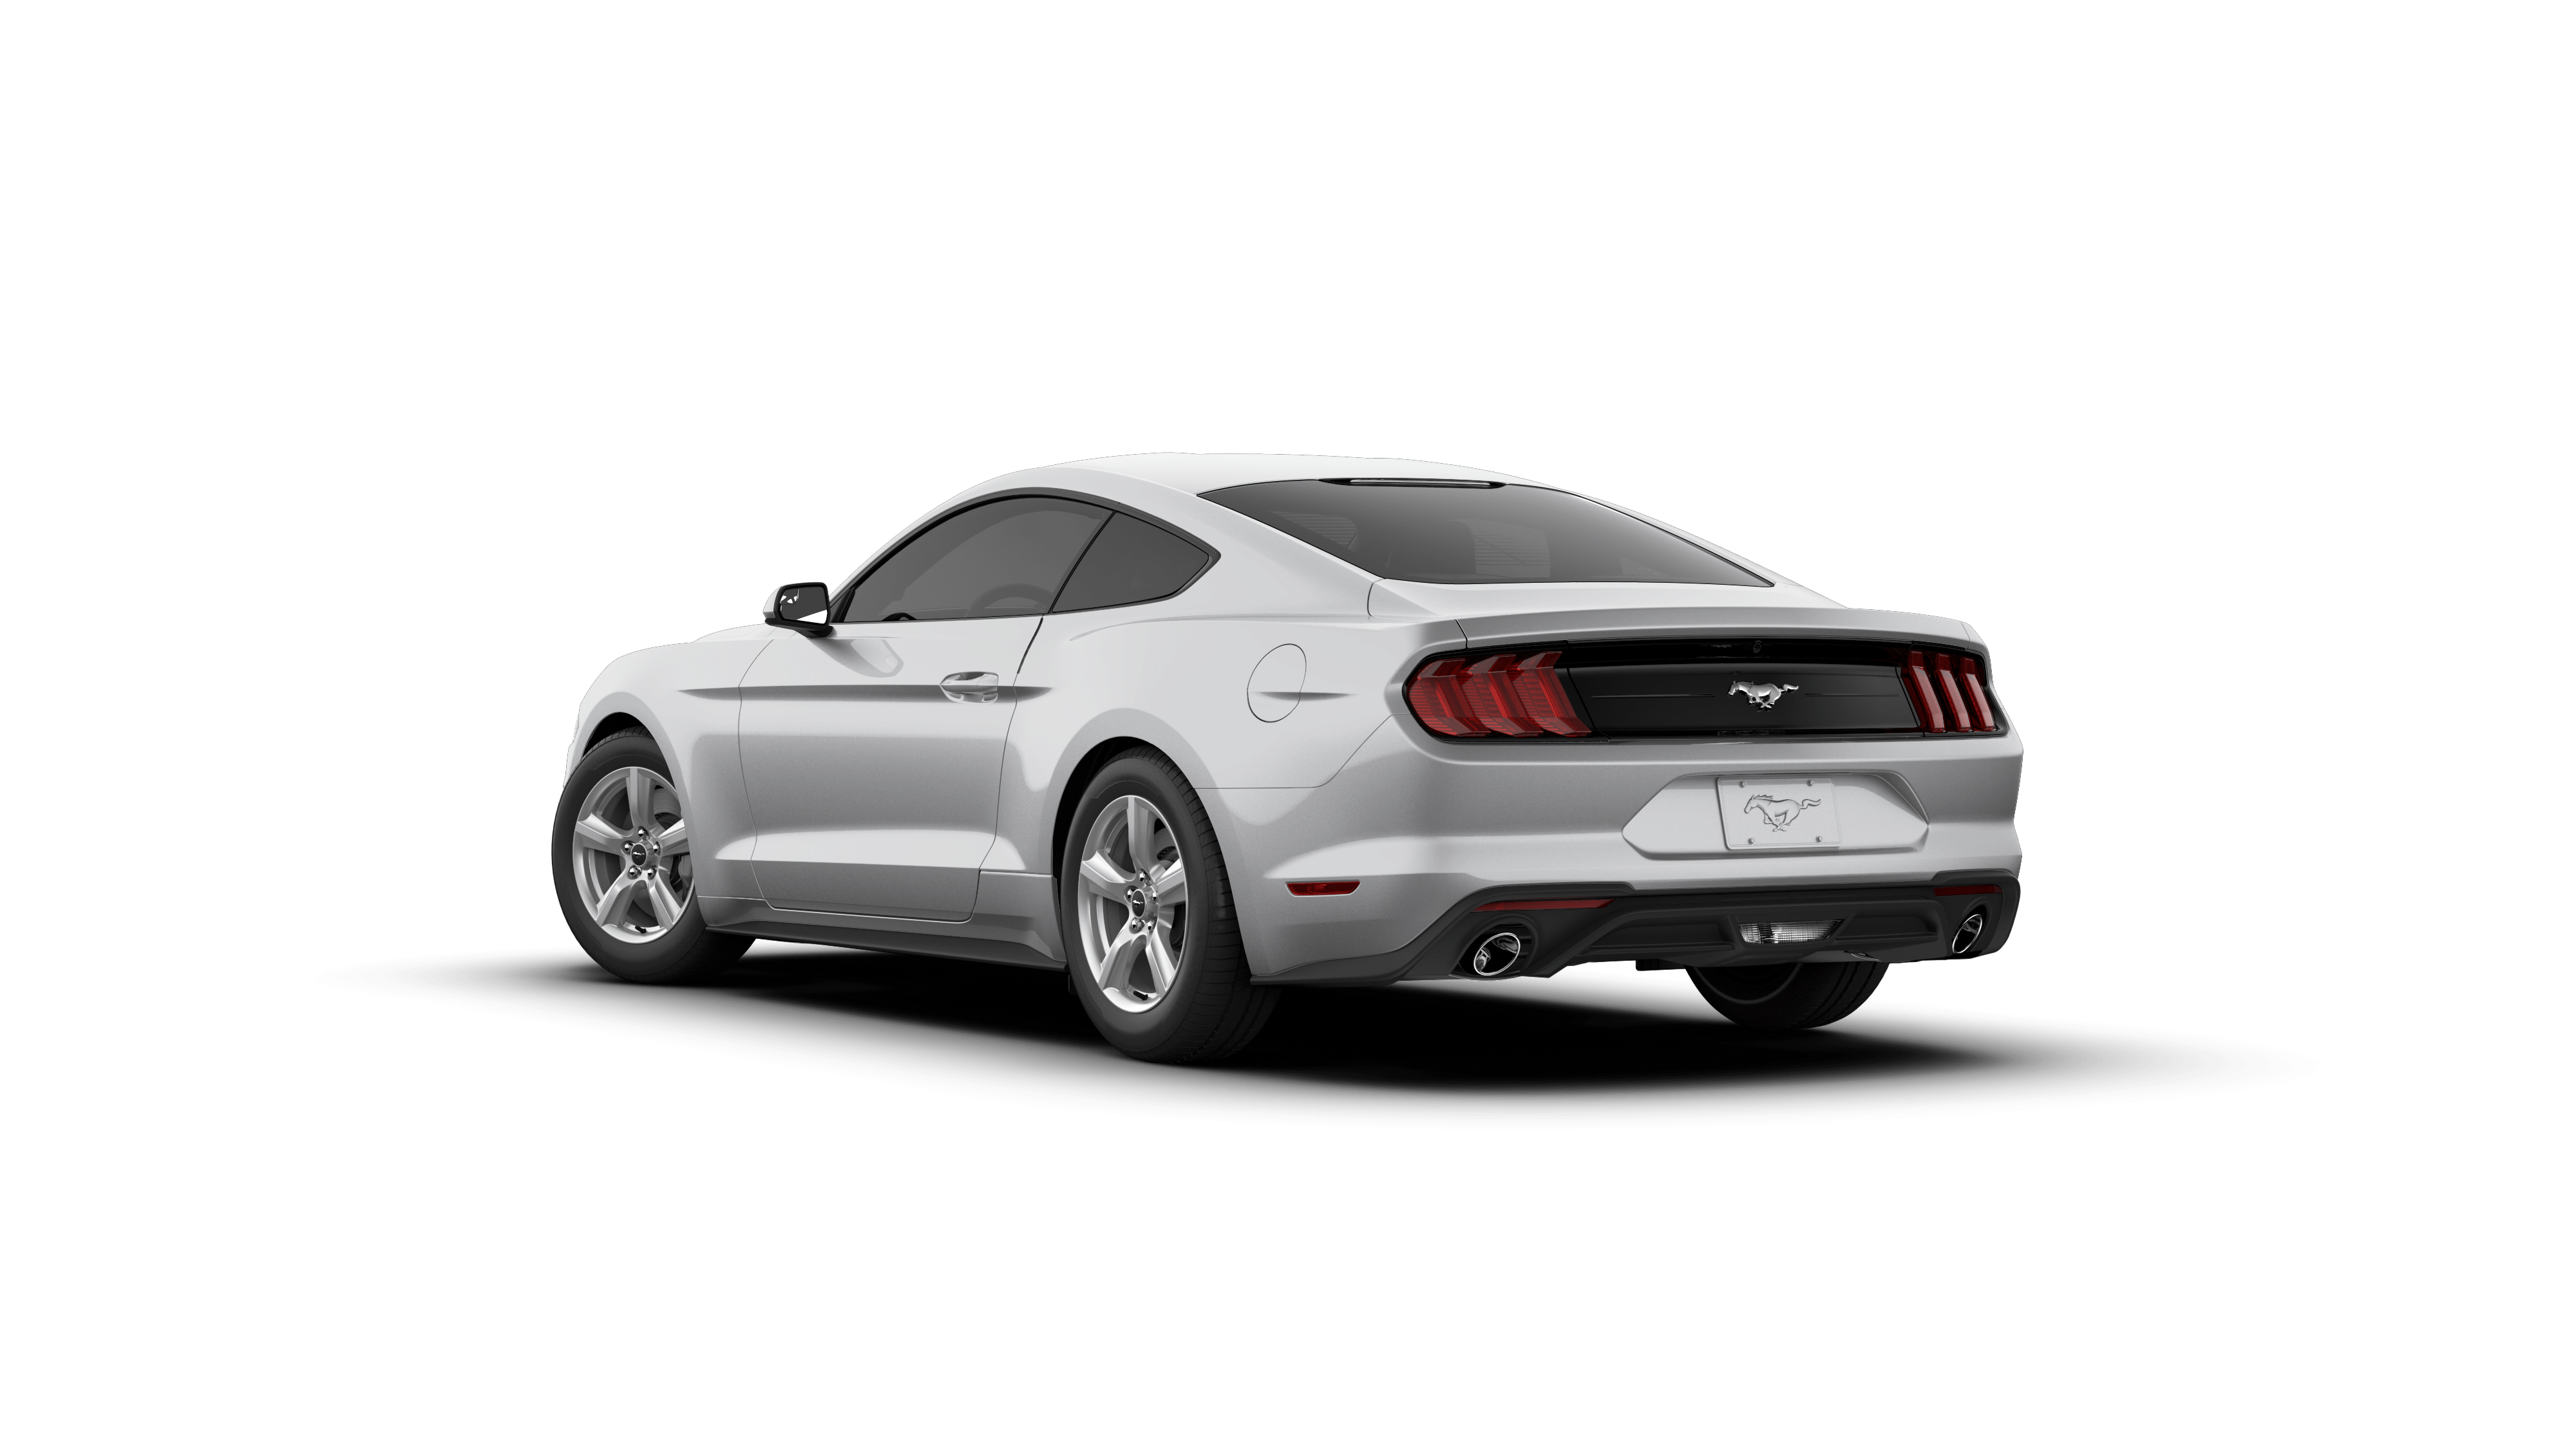 2018 Ford Mustang for sale in Sierra Vista 1FA6P8TH7J